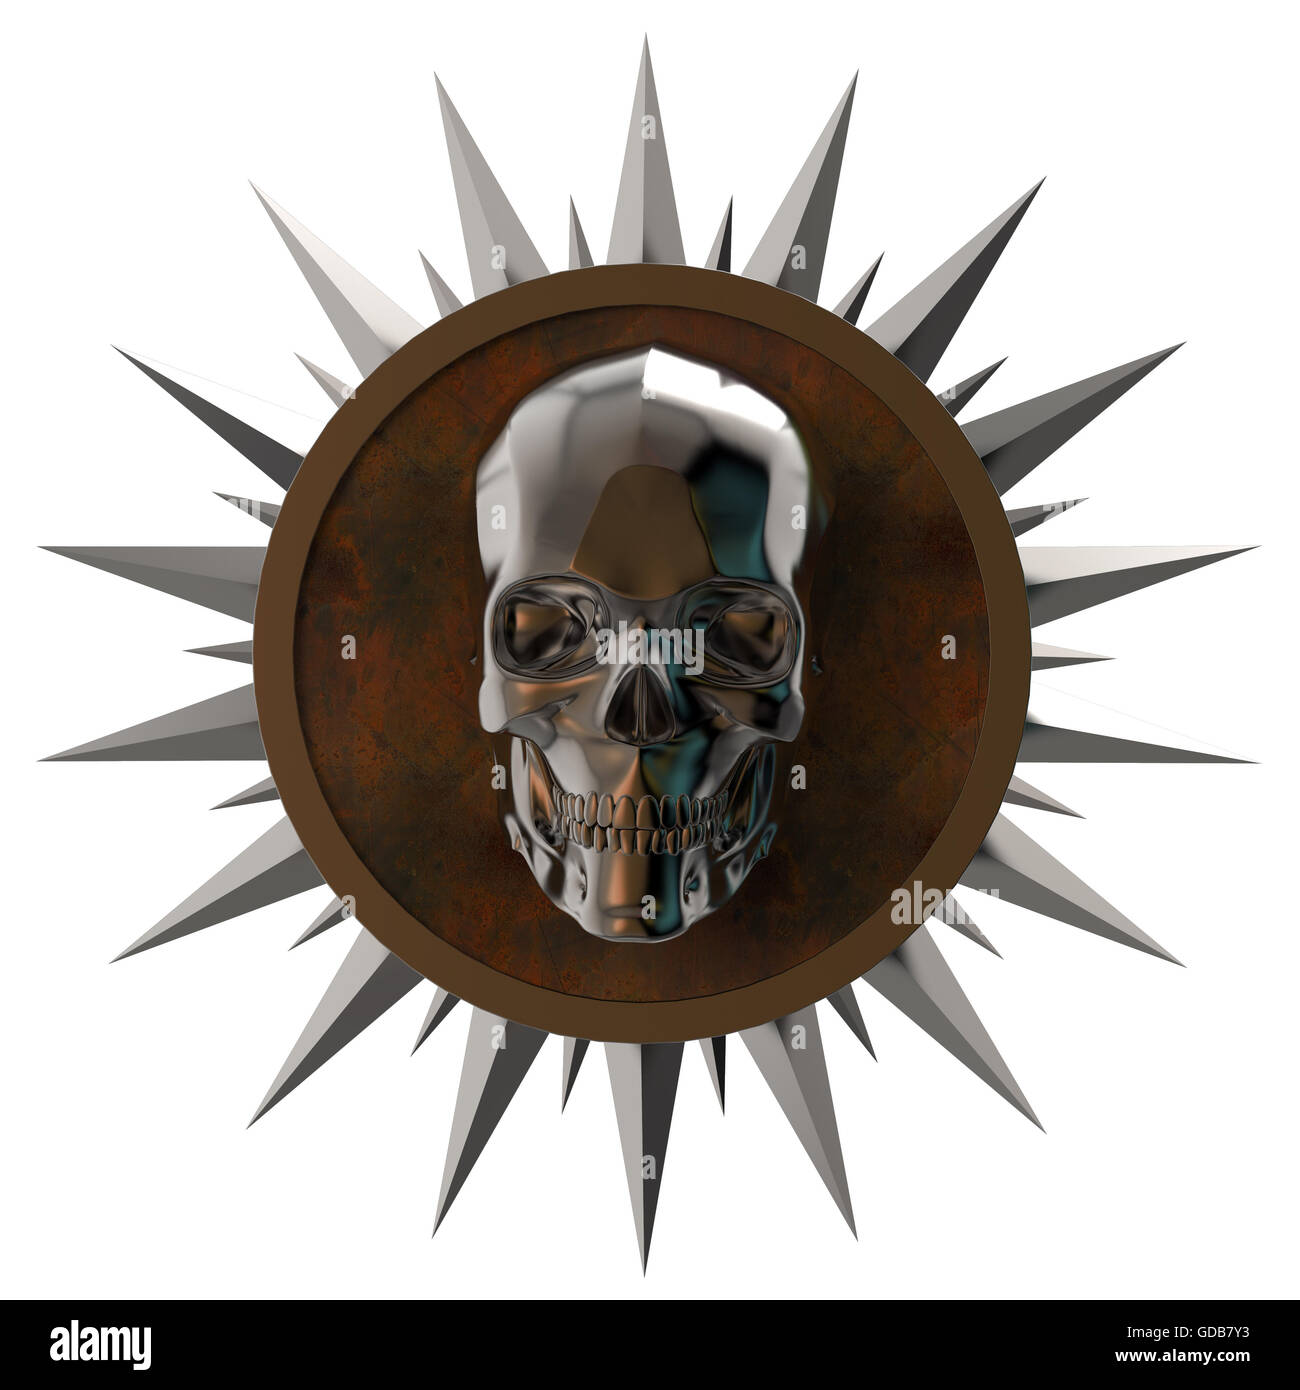 shiny dark metal skull on rusty  plate with   spikes around,isolated  white, post-apocalyptic raiders crest. render - Stock Image